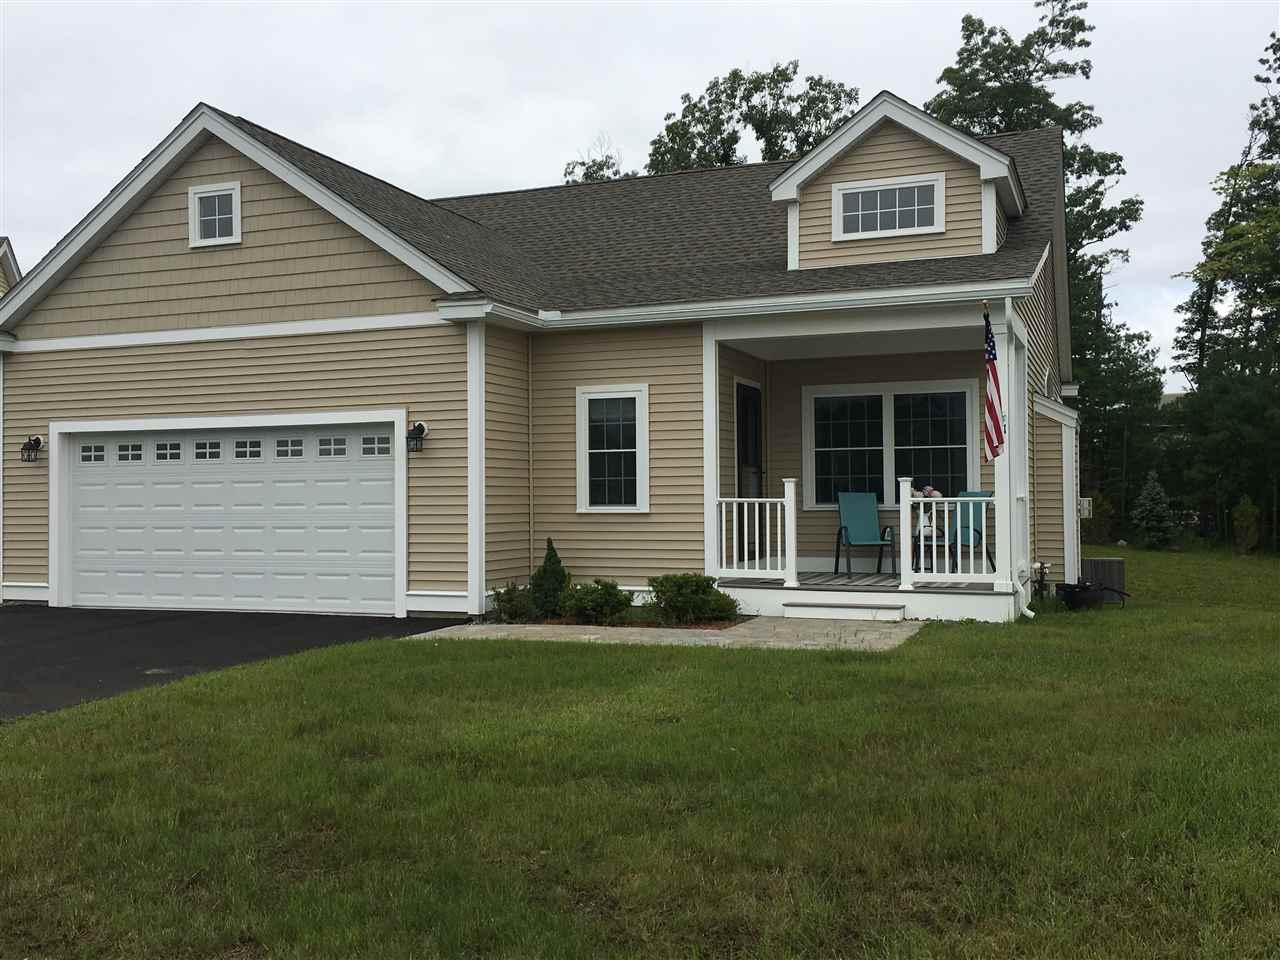 MLS 4788589: 45 Toby Circle-Unit Lot 22, Merrimack NH